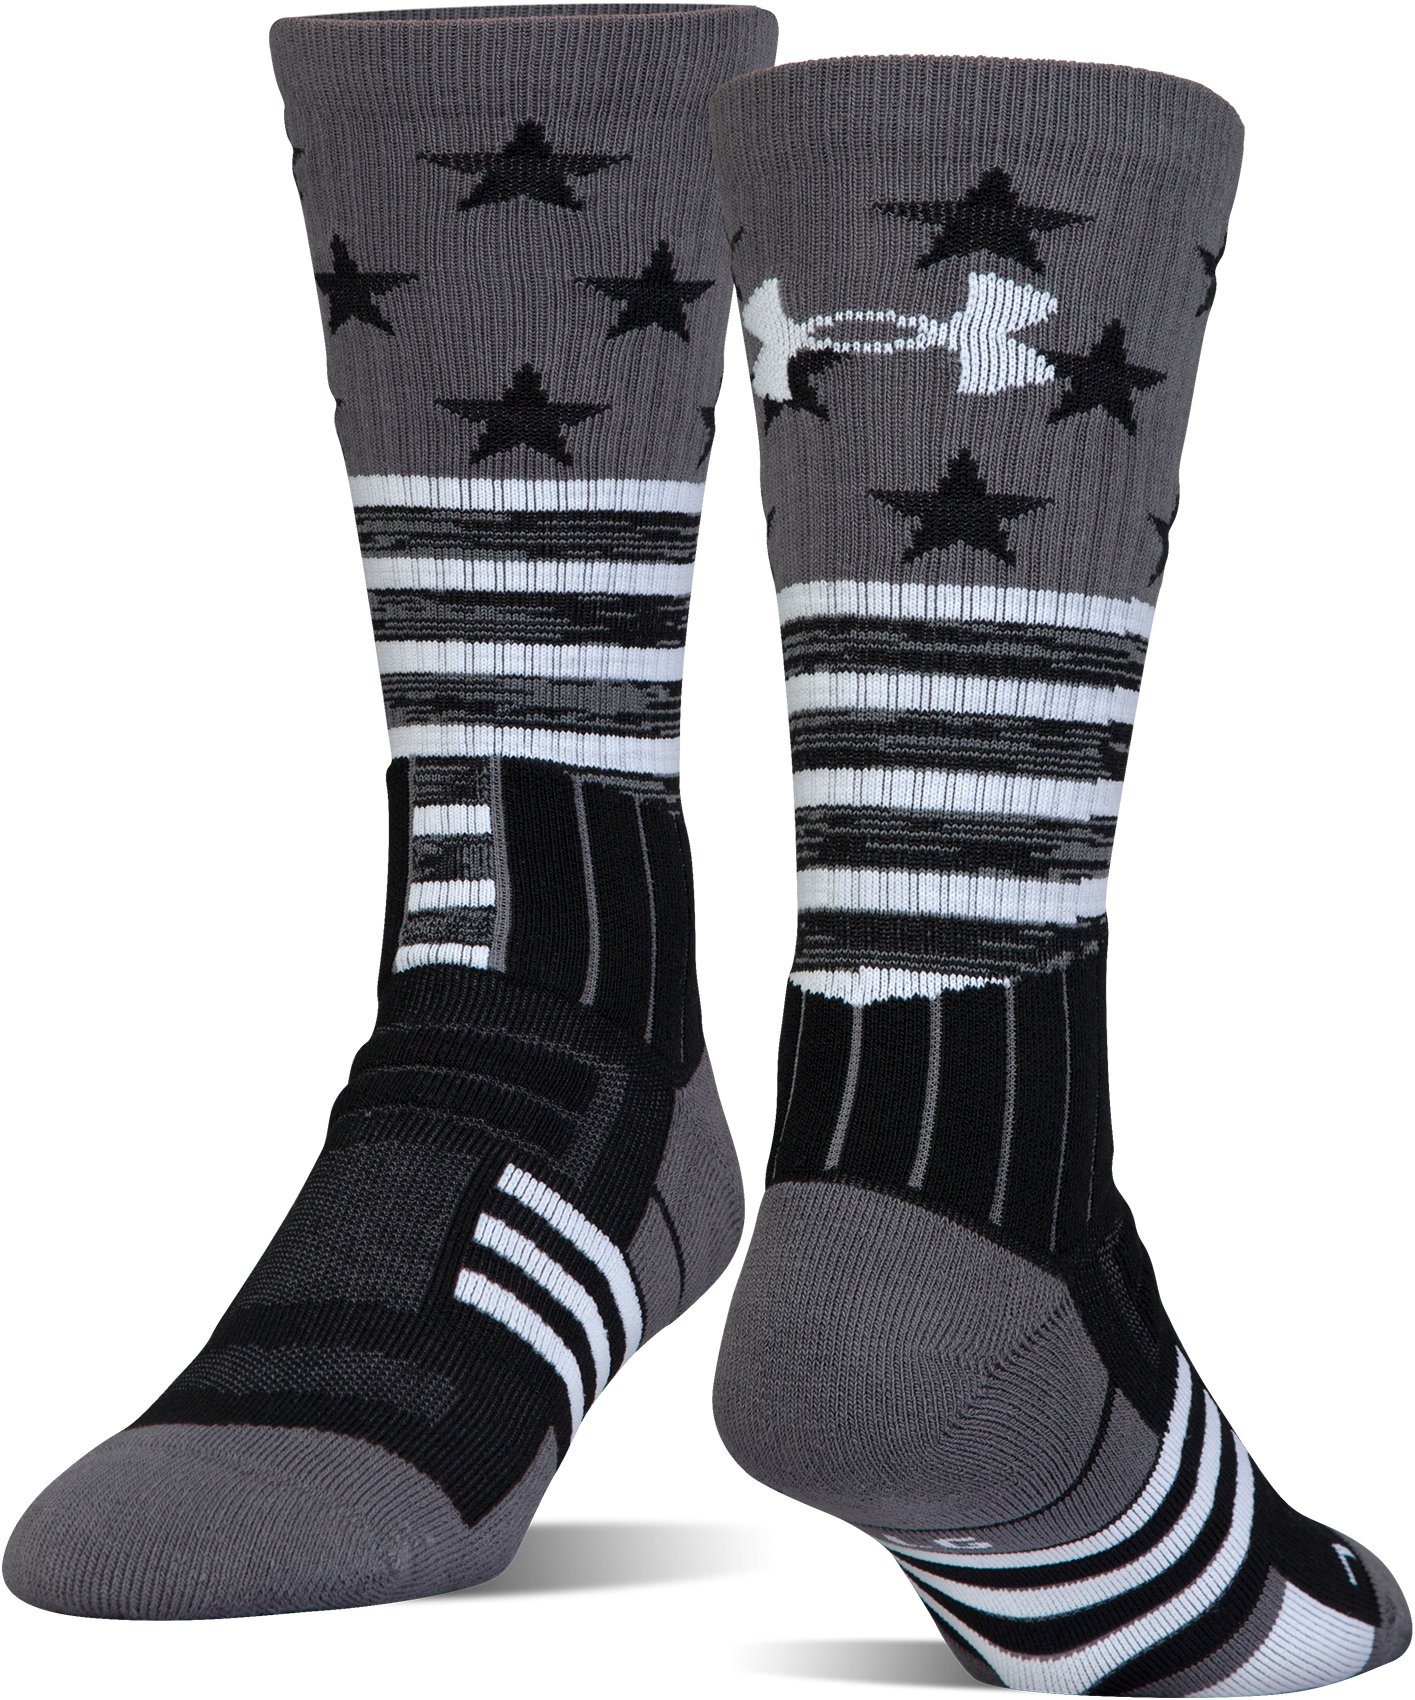 Kids' UA Unrivaled Stars & Stripes Crew Socks 2 Colors $13.99 - $14.00